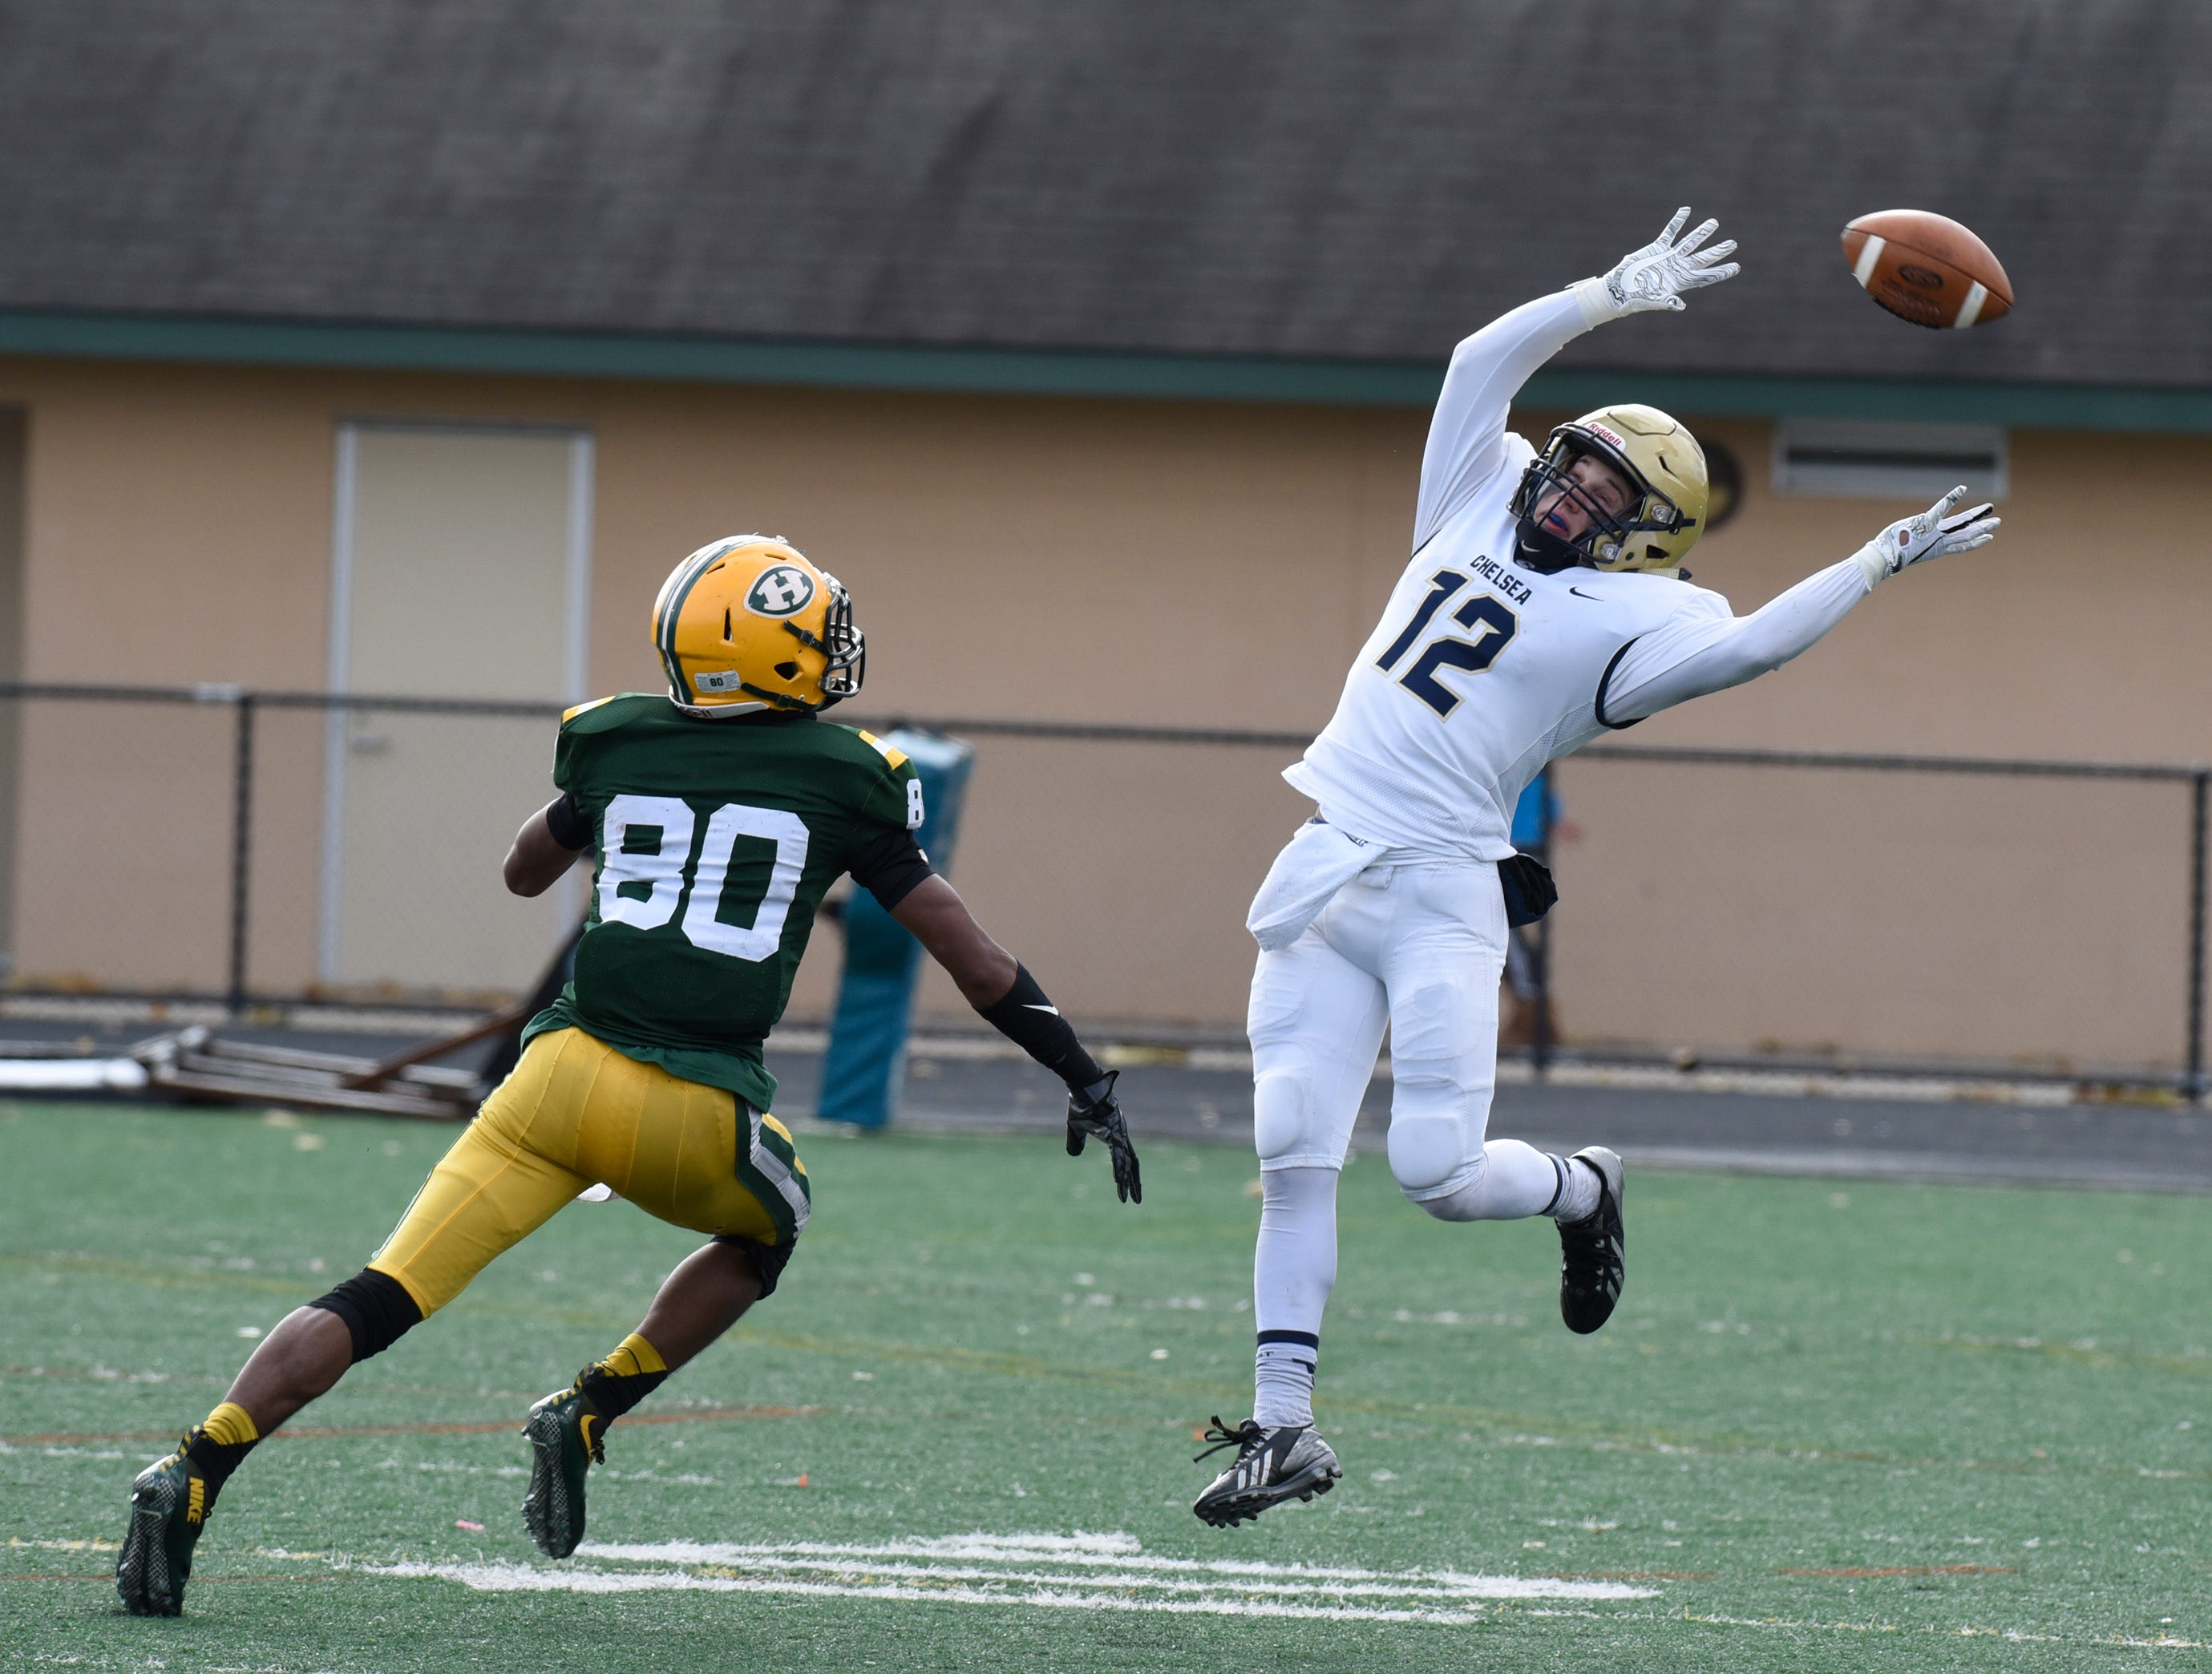 This pass is too high for RB/Wr Mitch Reynolds (12) as Farmington Harrison SE/DB Trenton Ramsey (80) covers during first half of the Division 4 regional final played at Buller Field Nov. 10, 2018